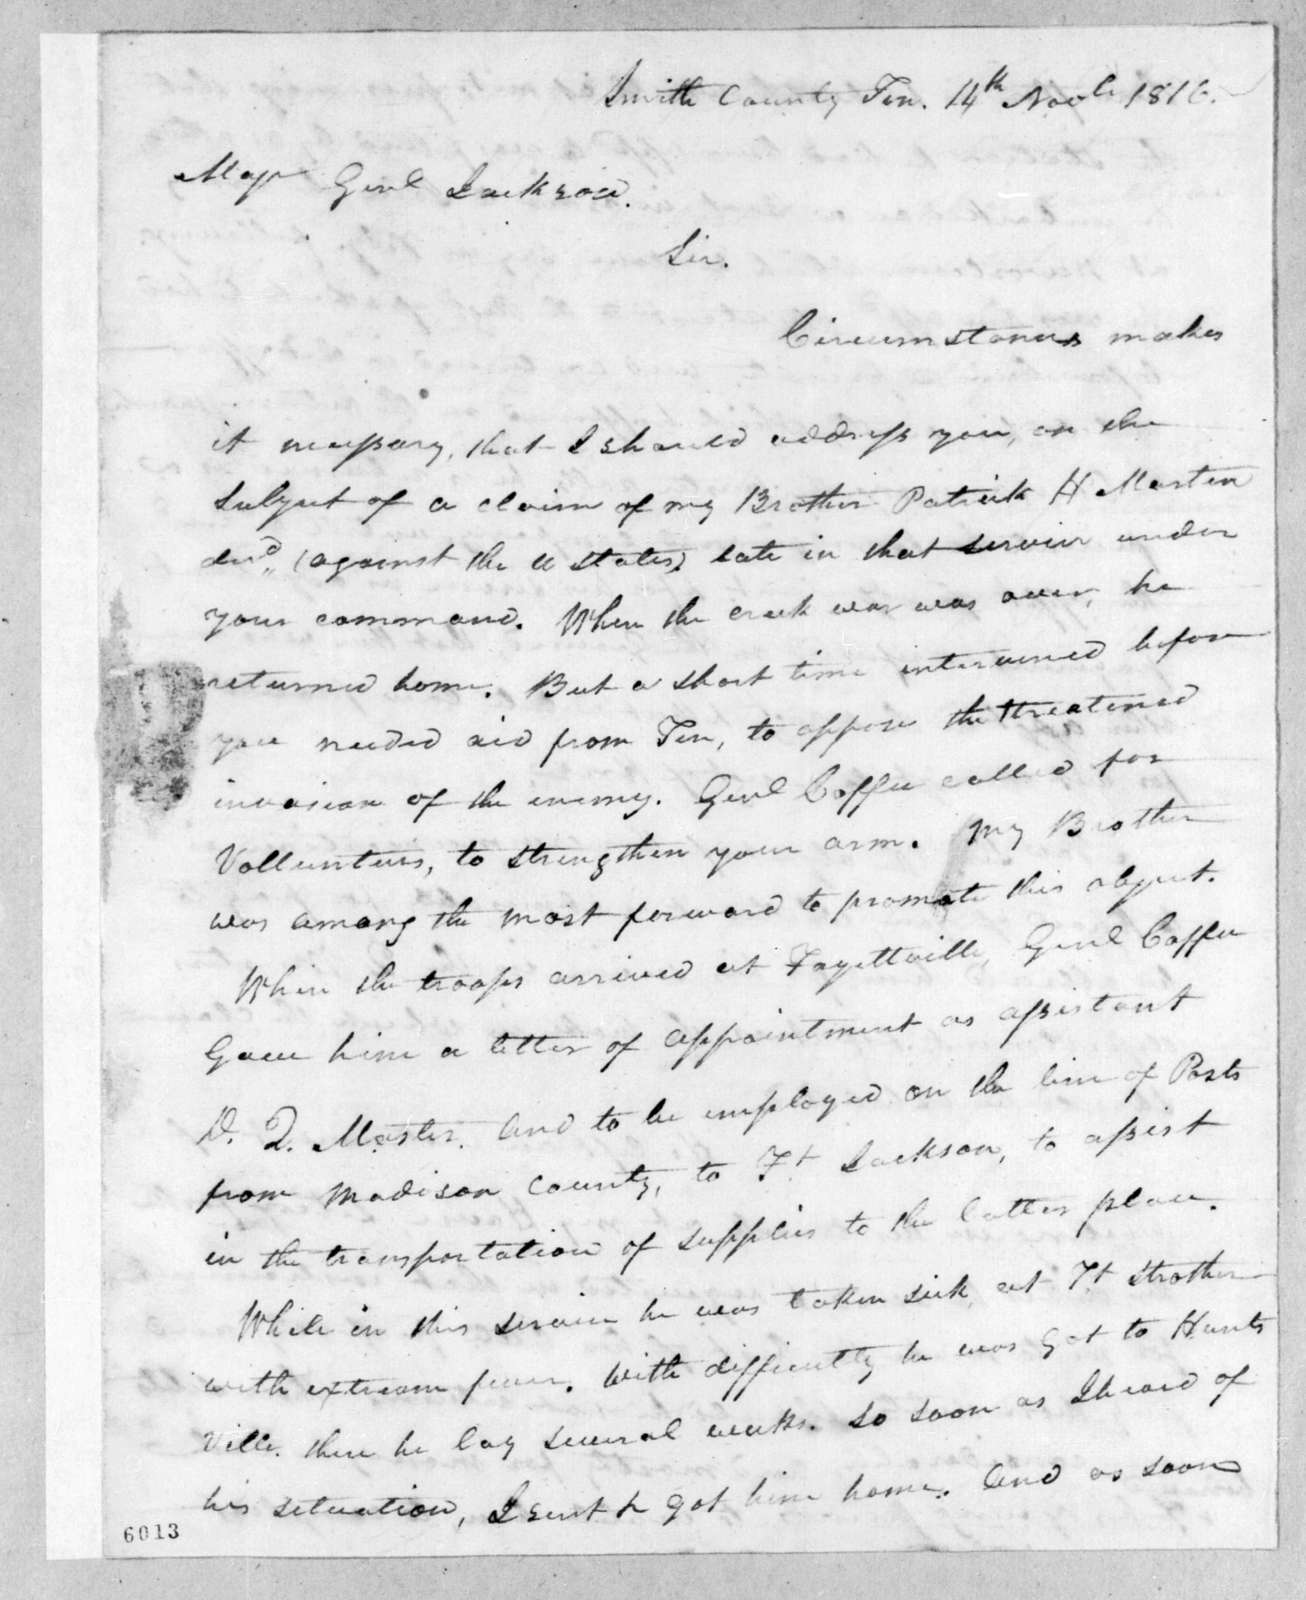 William Martin to Andrew Jackson, November 14, 1816